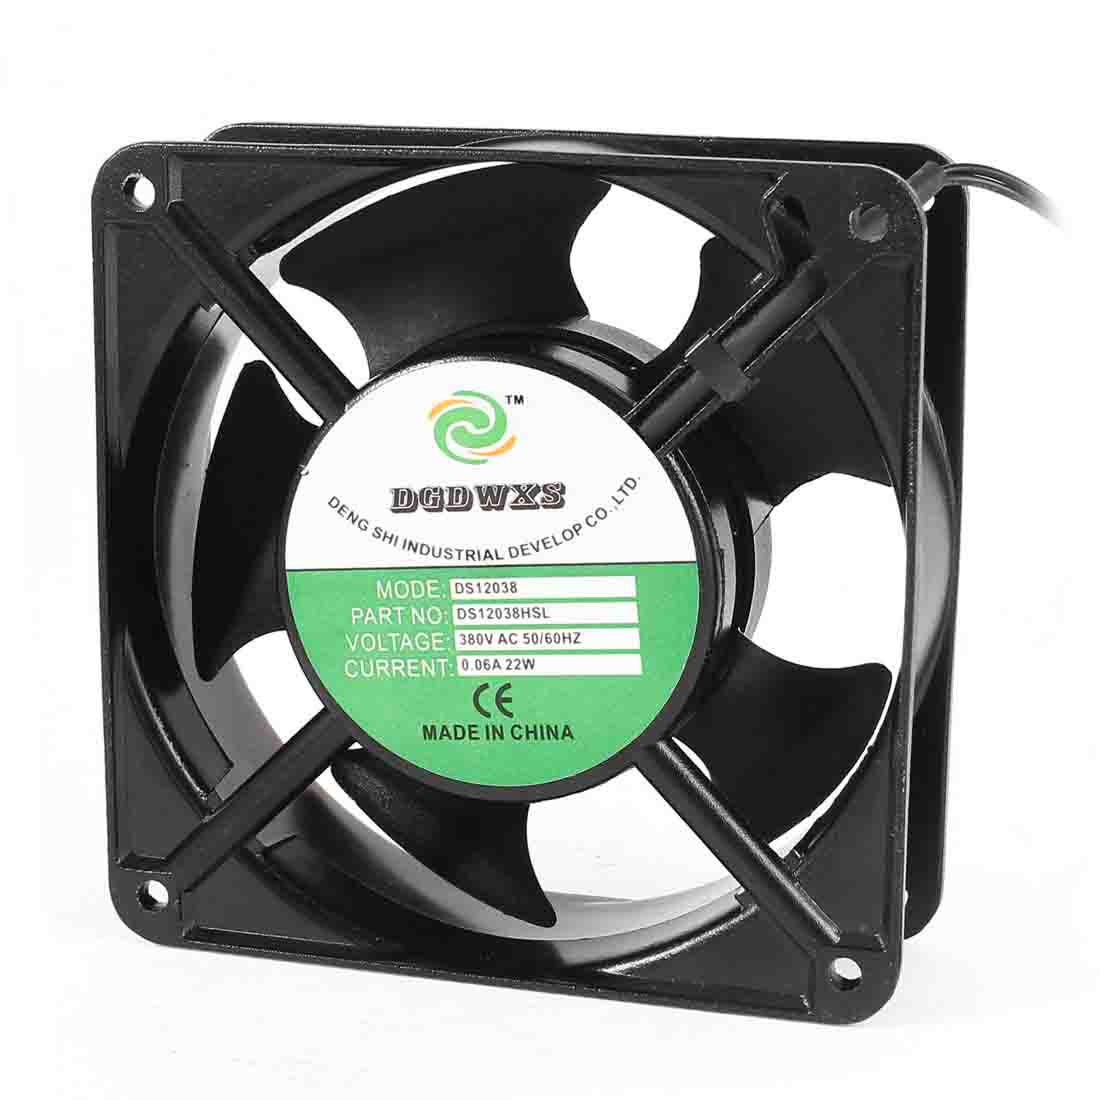 12cm x 3.8cm 2 Terminals AC 380V 0.06A Metal Frame AC Axial Cooling Fan